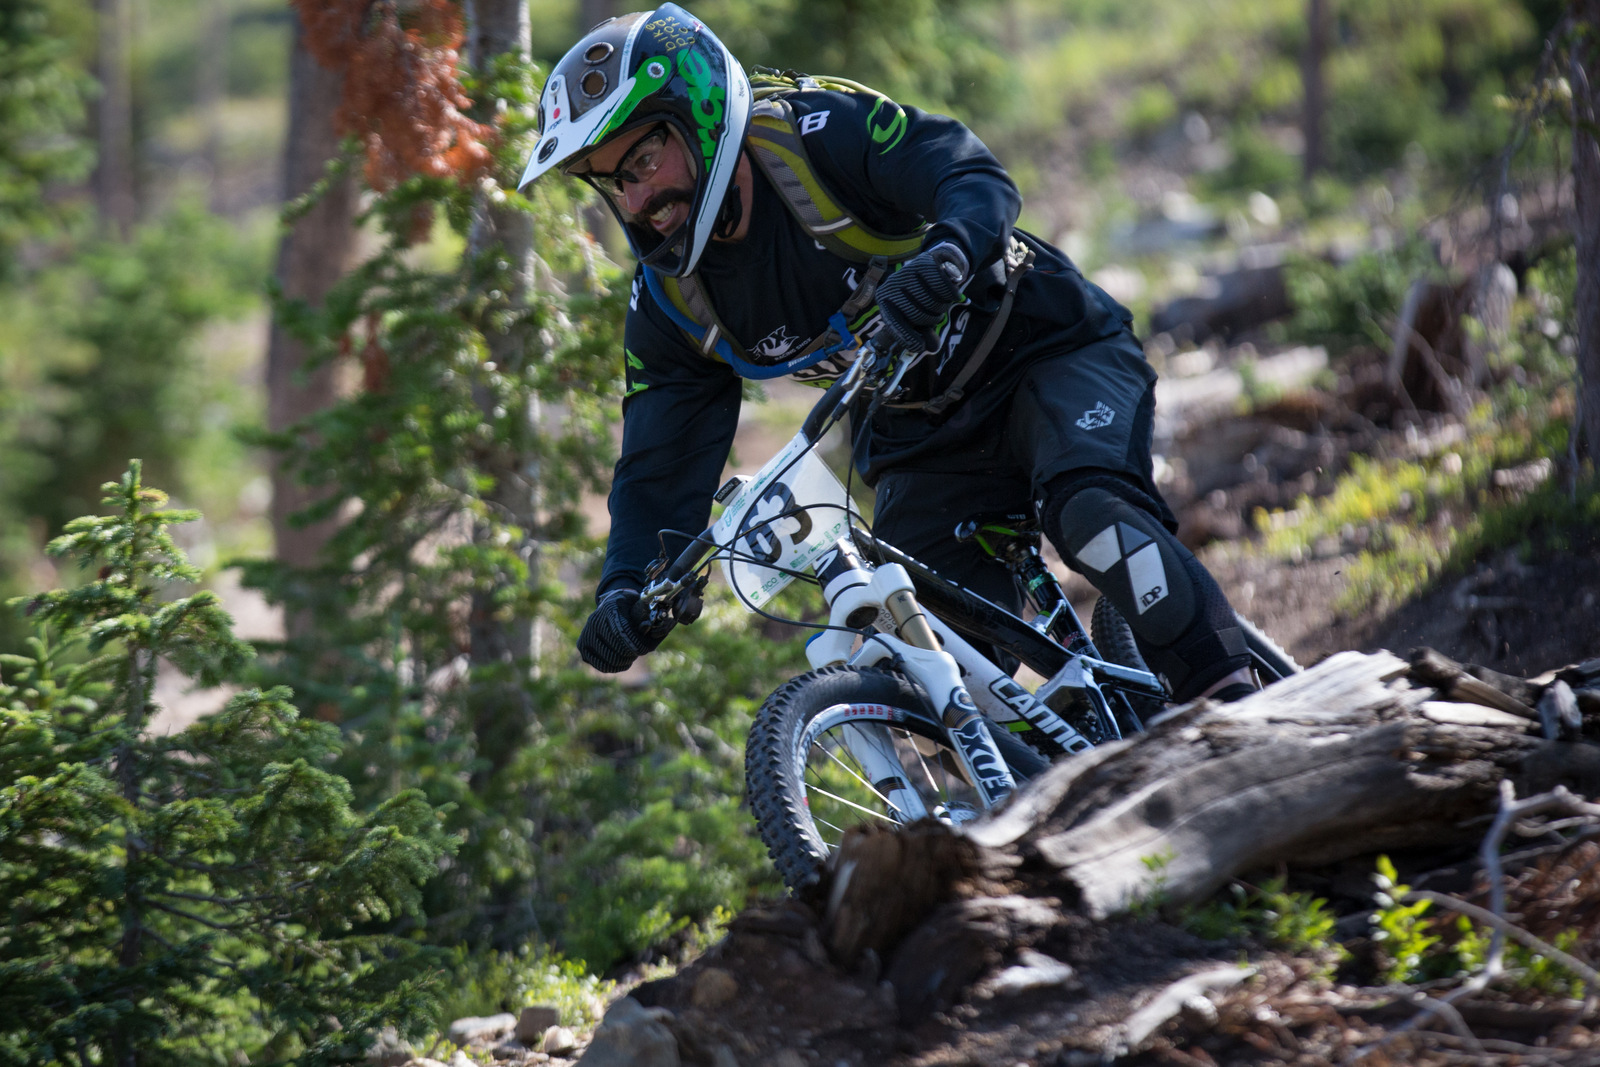 Mark Weir in Stage 1 of Winter Park Enduro World Series Race